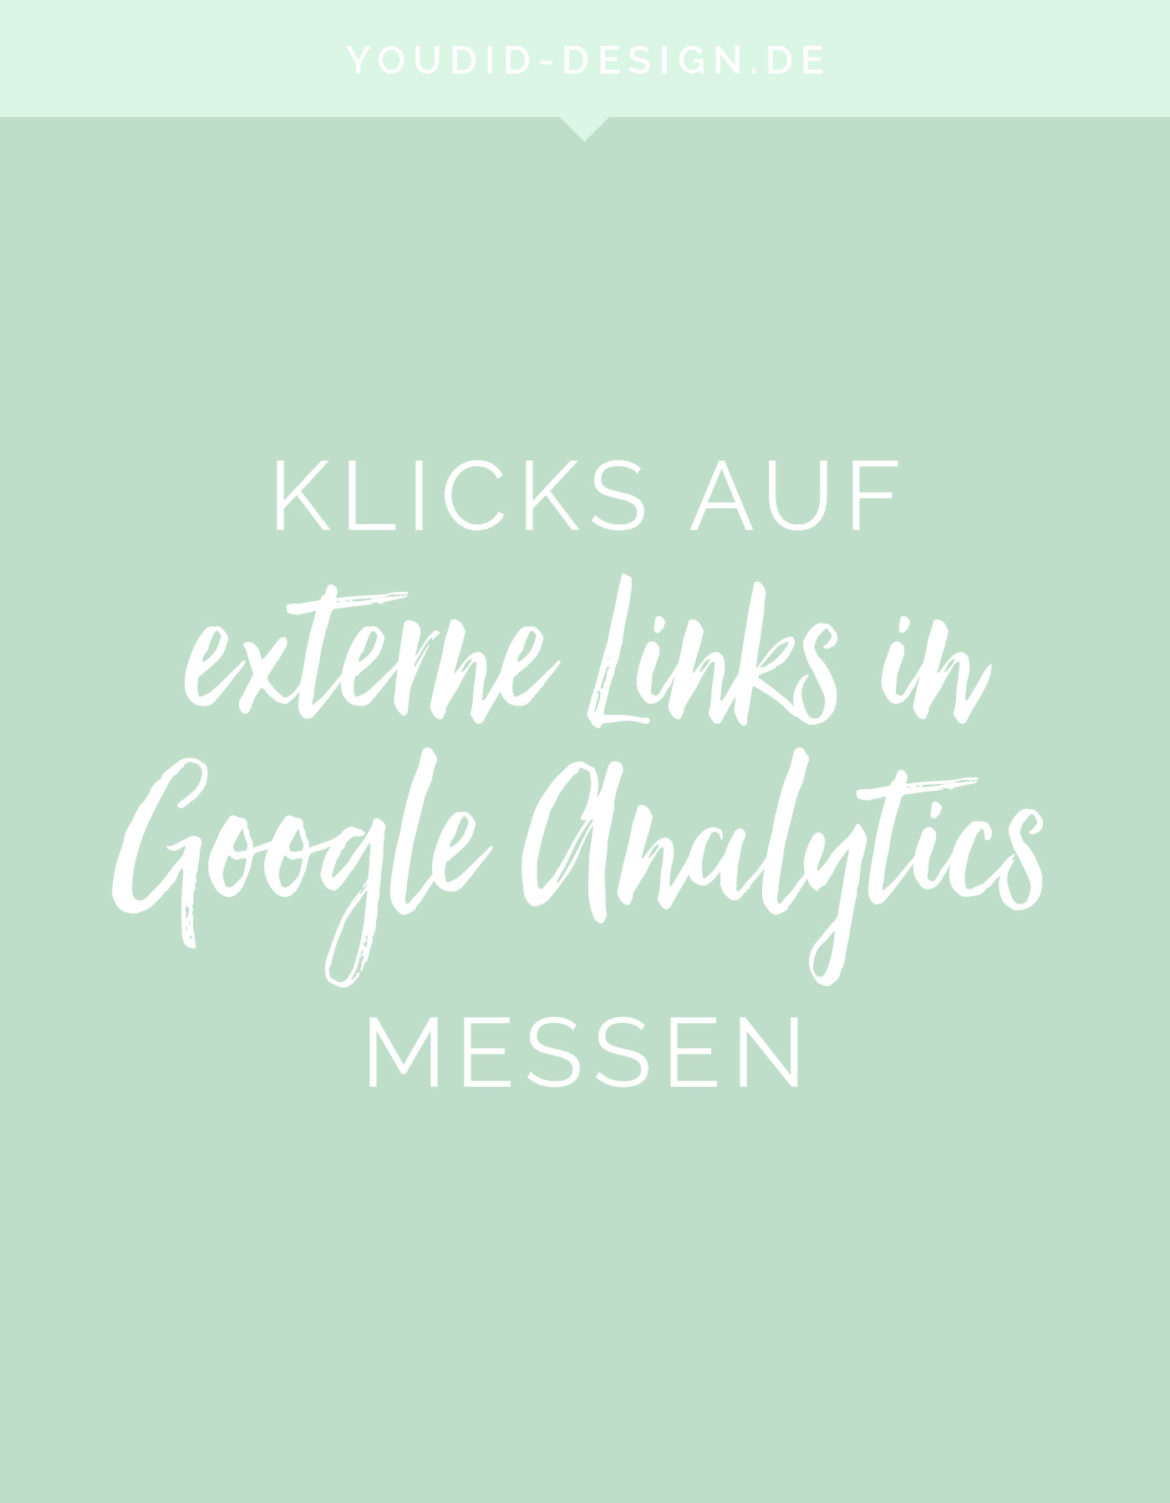 Klicks auf externe Links mit Google Analytics messen Tutorial | www.youdid-design.de